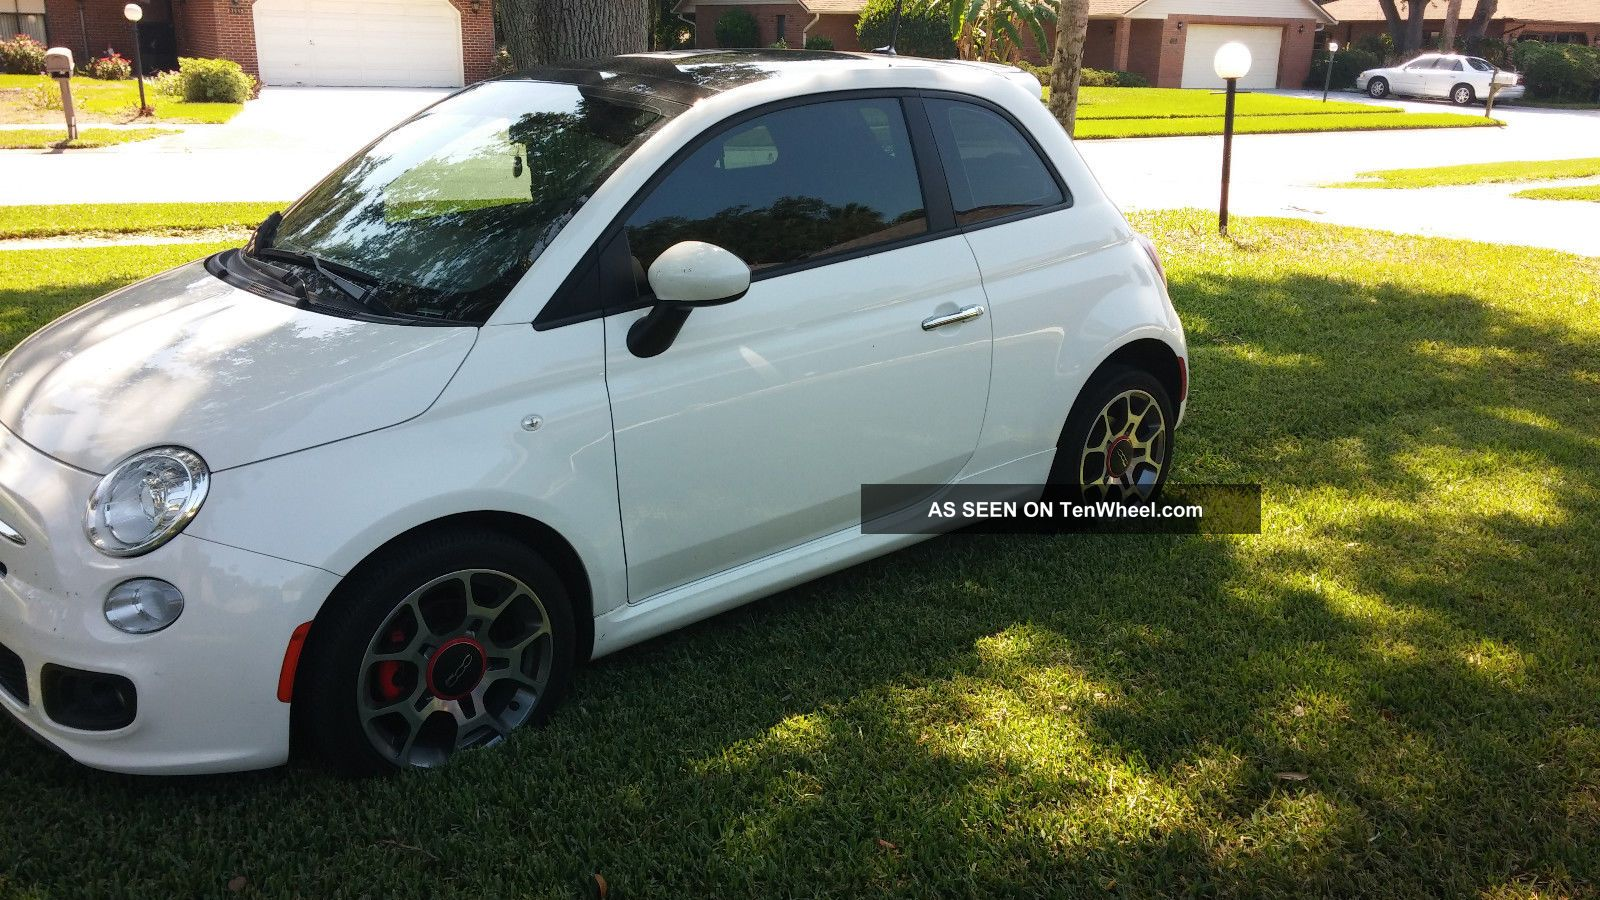 Garage kept 2012 fiat 500 sport auto with moon roof for Garage fiat 500